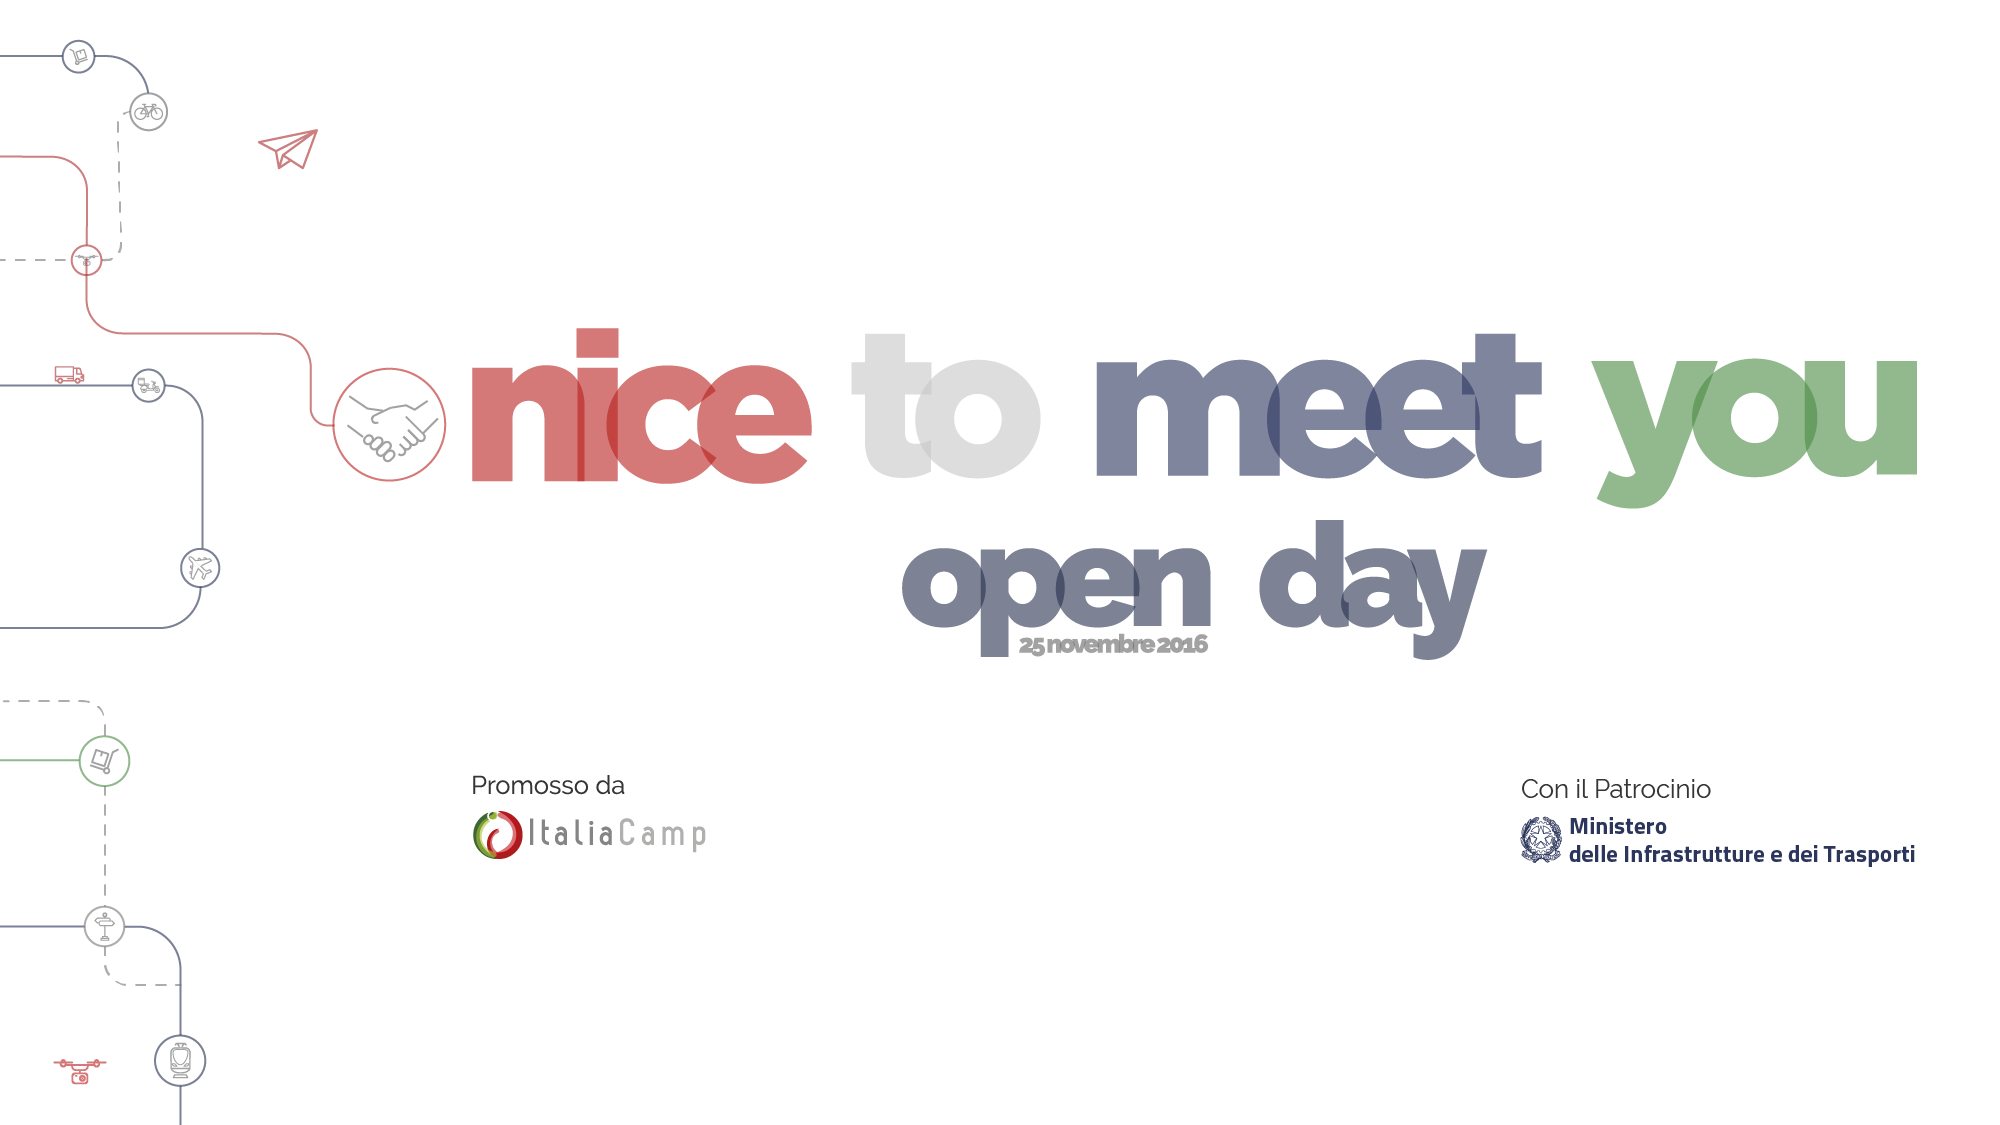 Nice to meet you open day